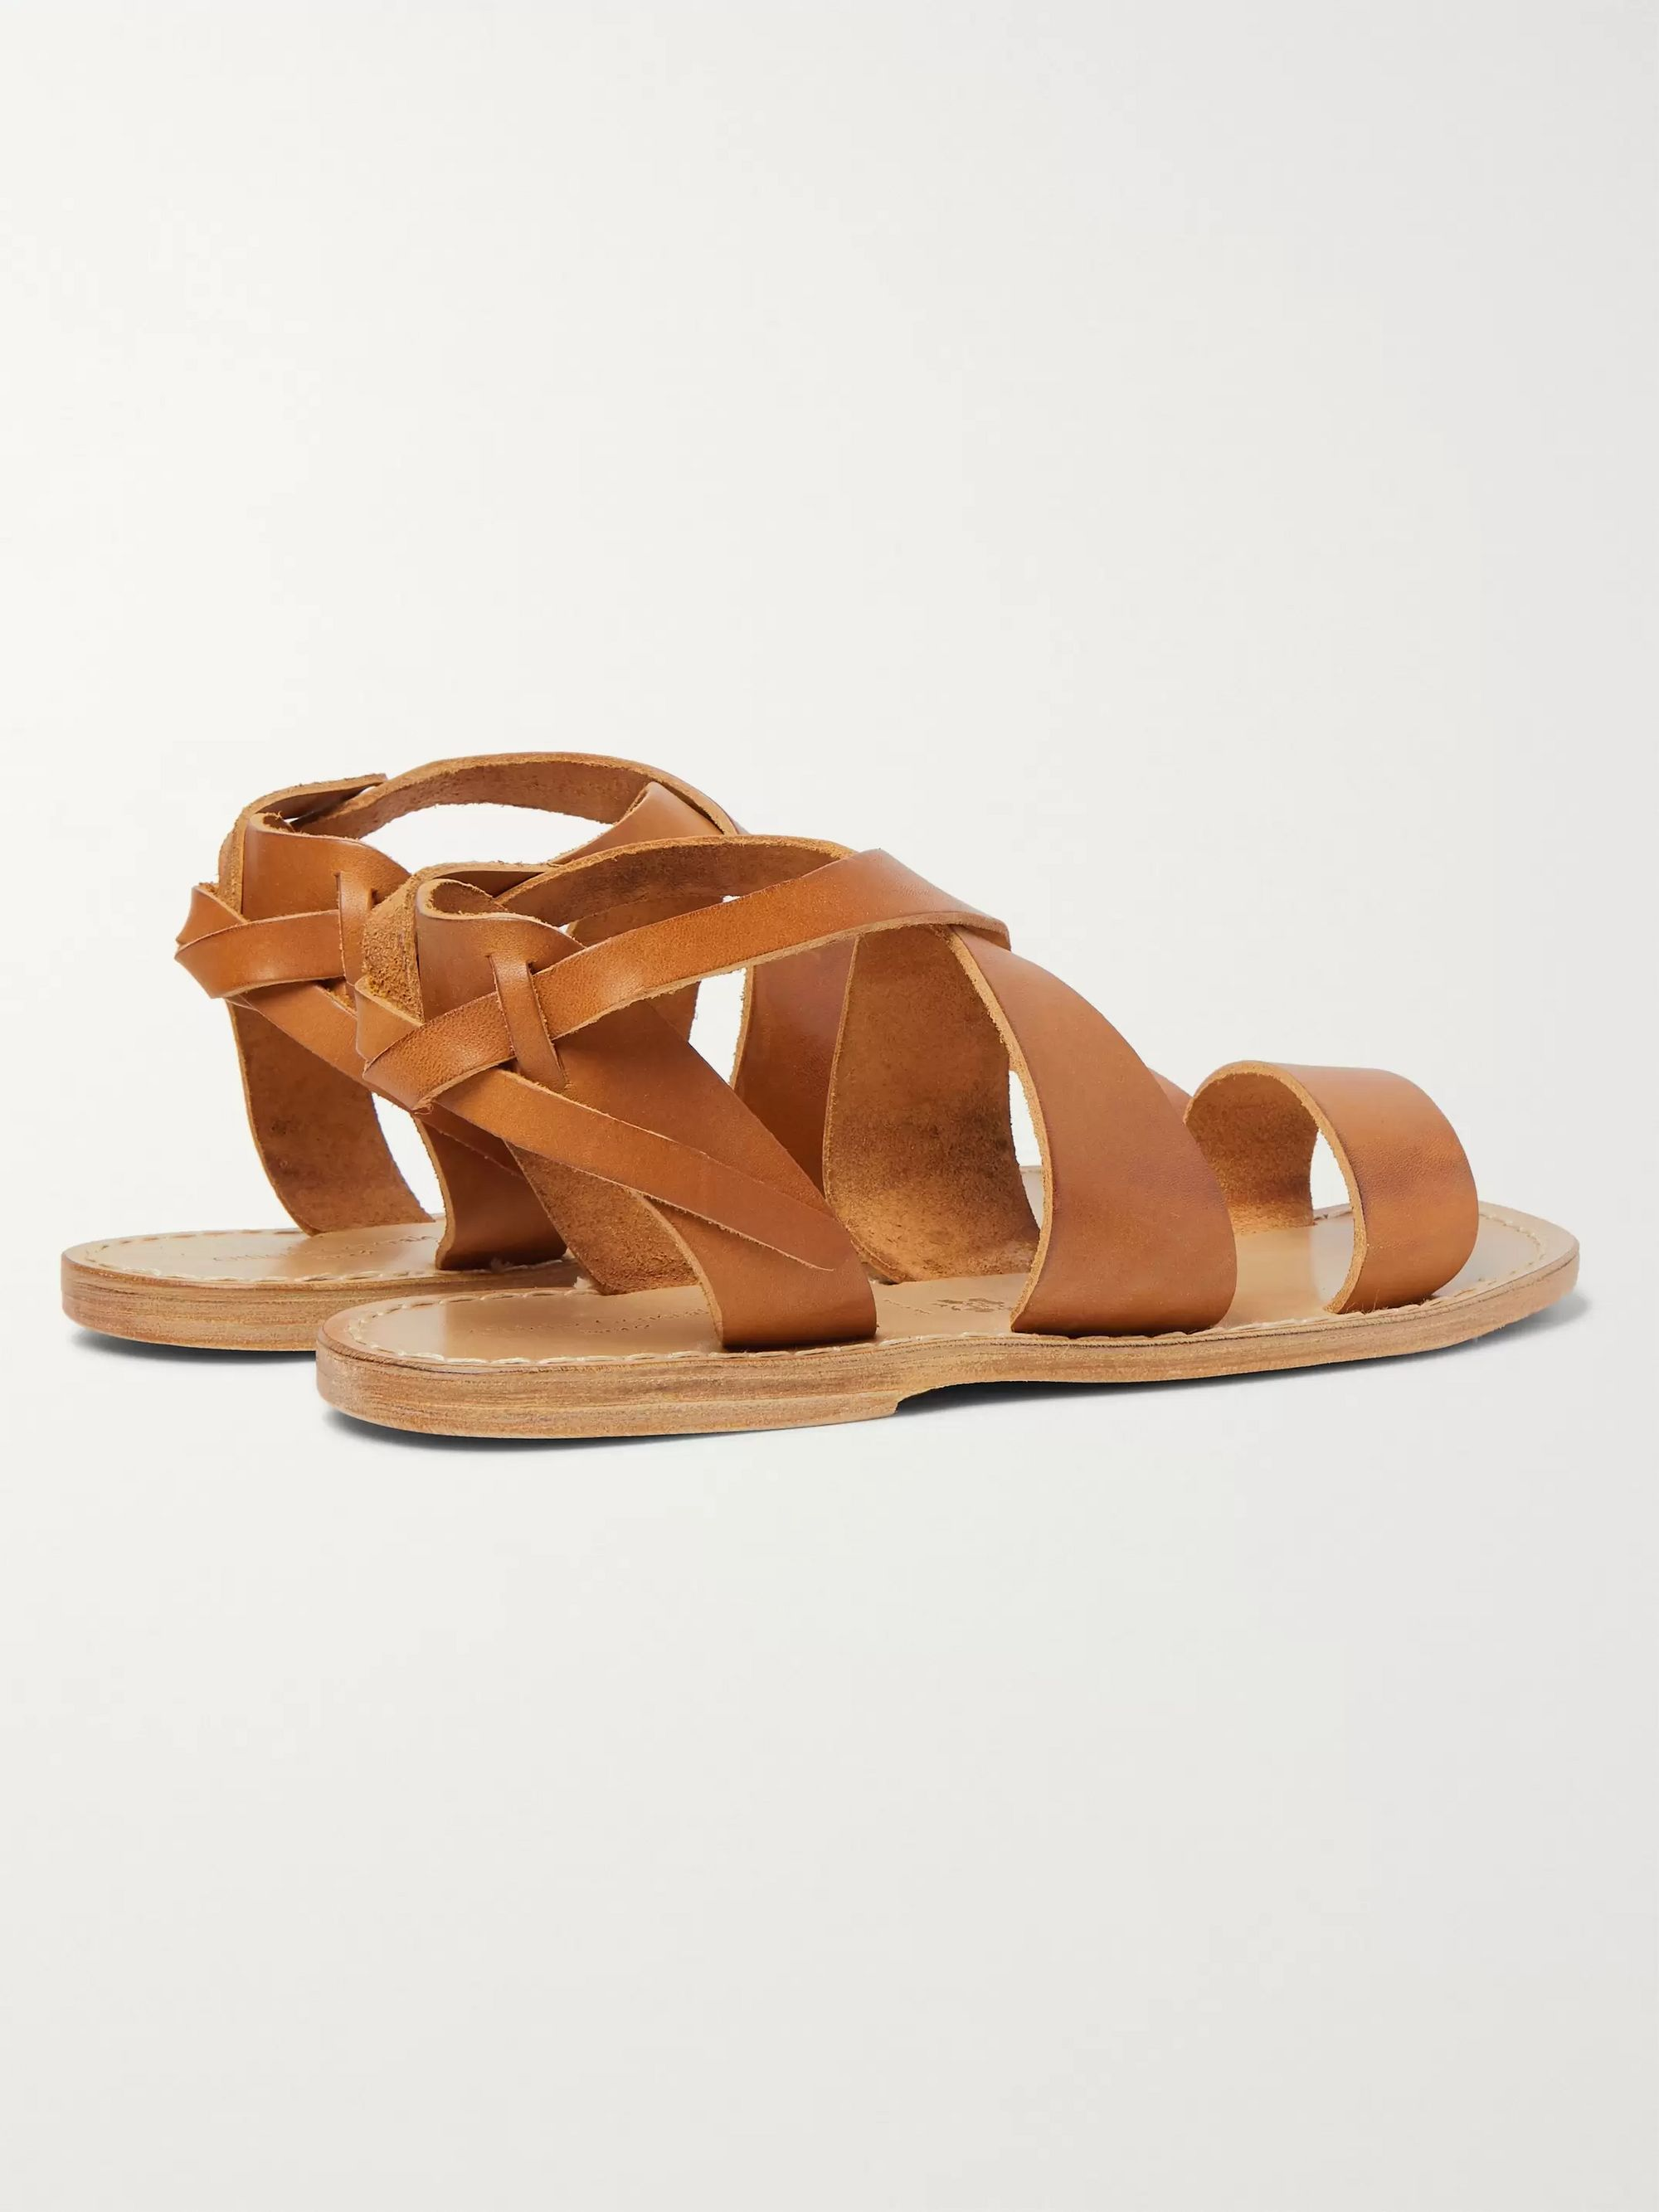 Officine Generale Positano Leather Sandals